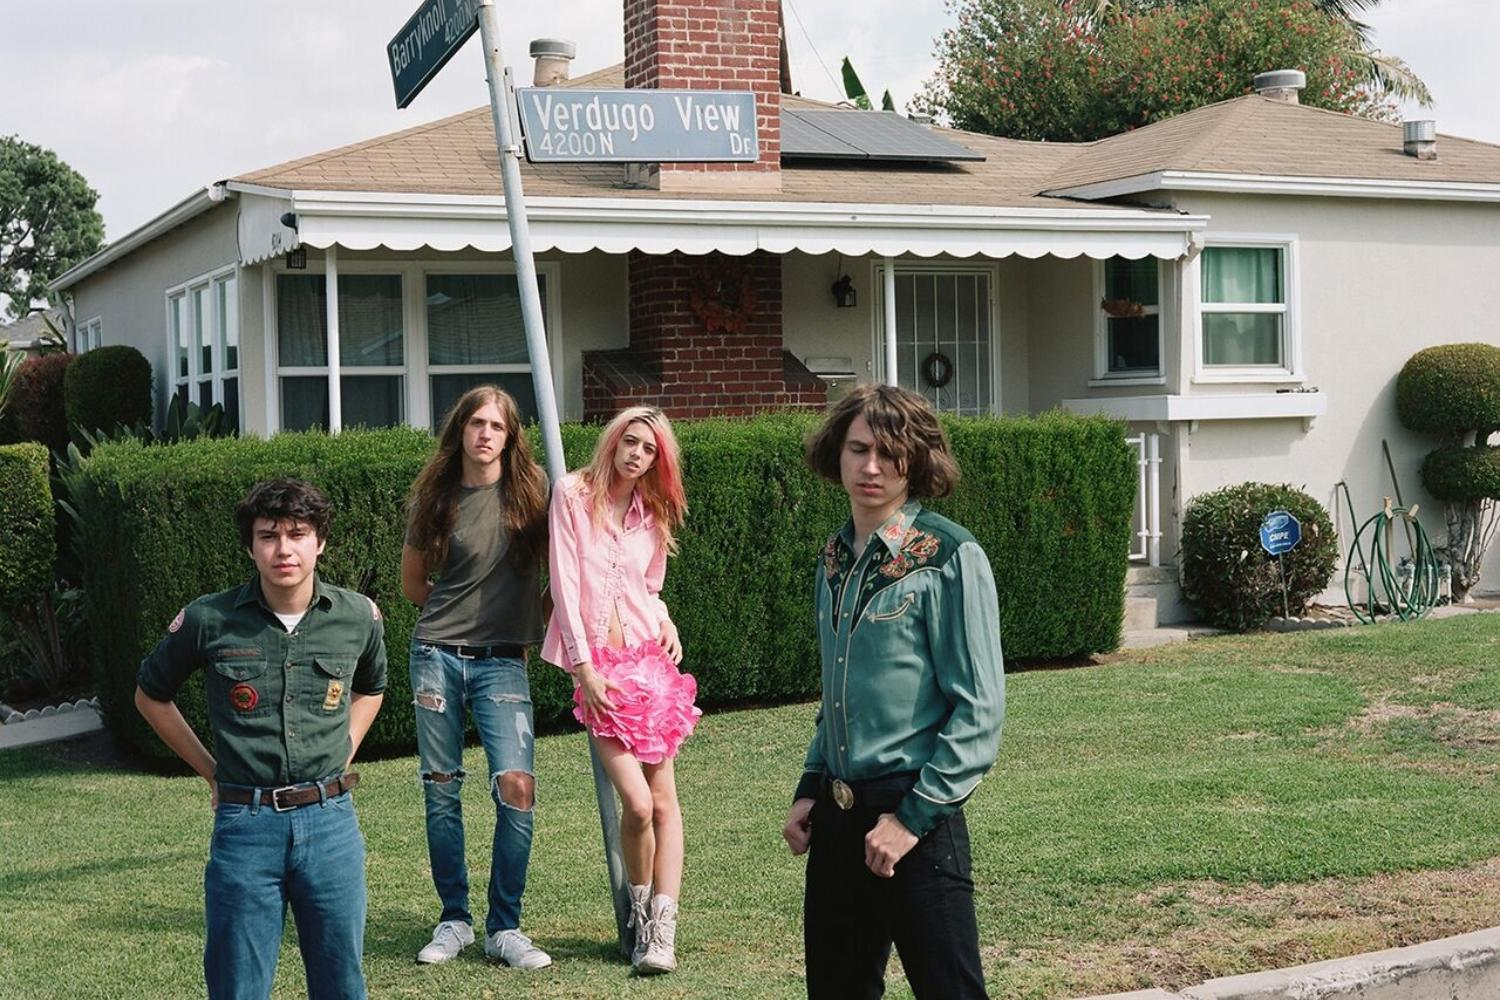 Starcrawler cover 'Pet Sematary' for film soundtrack